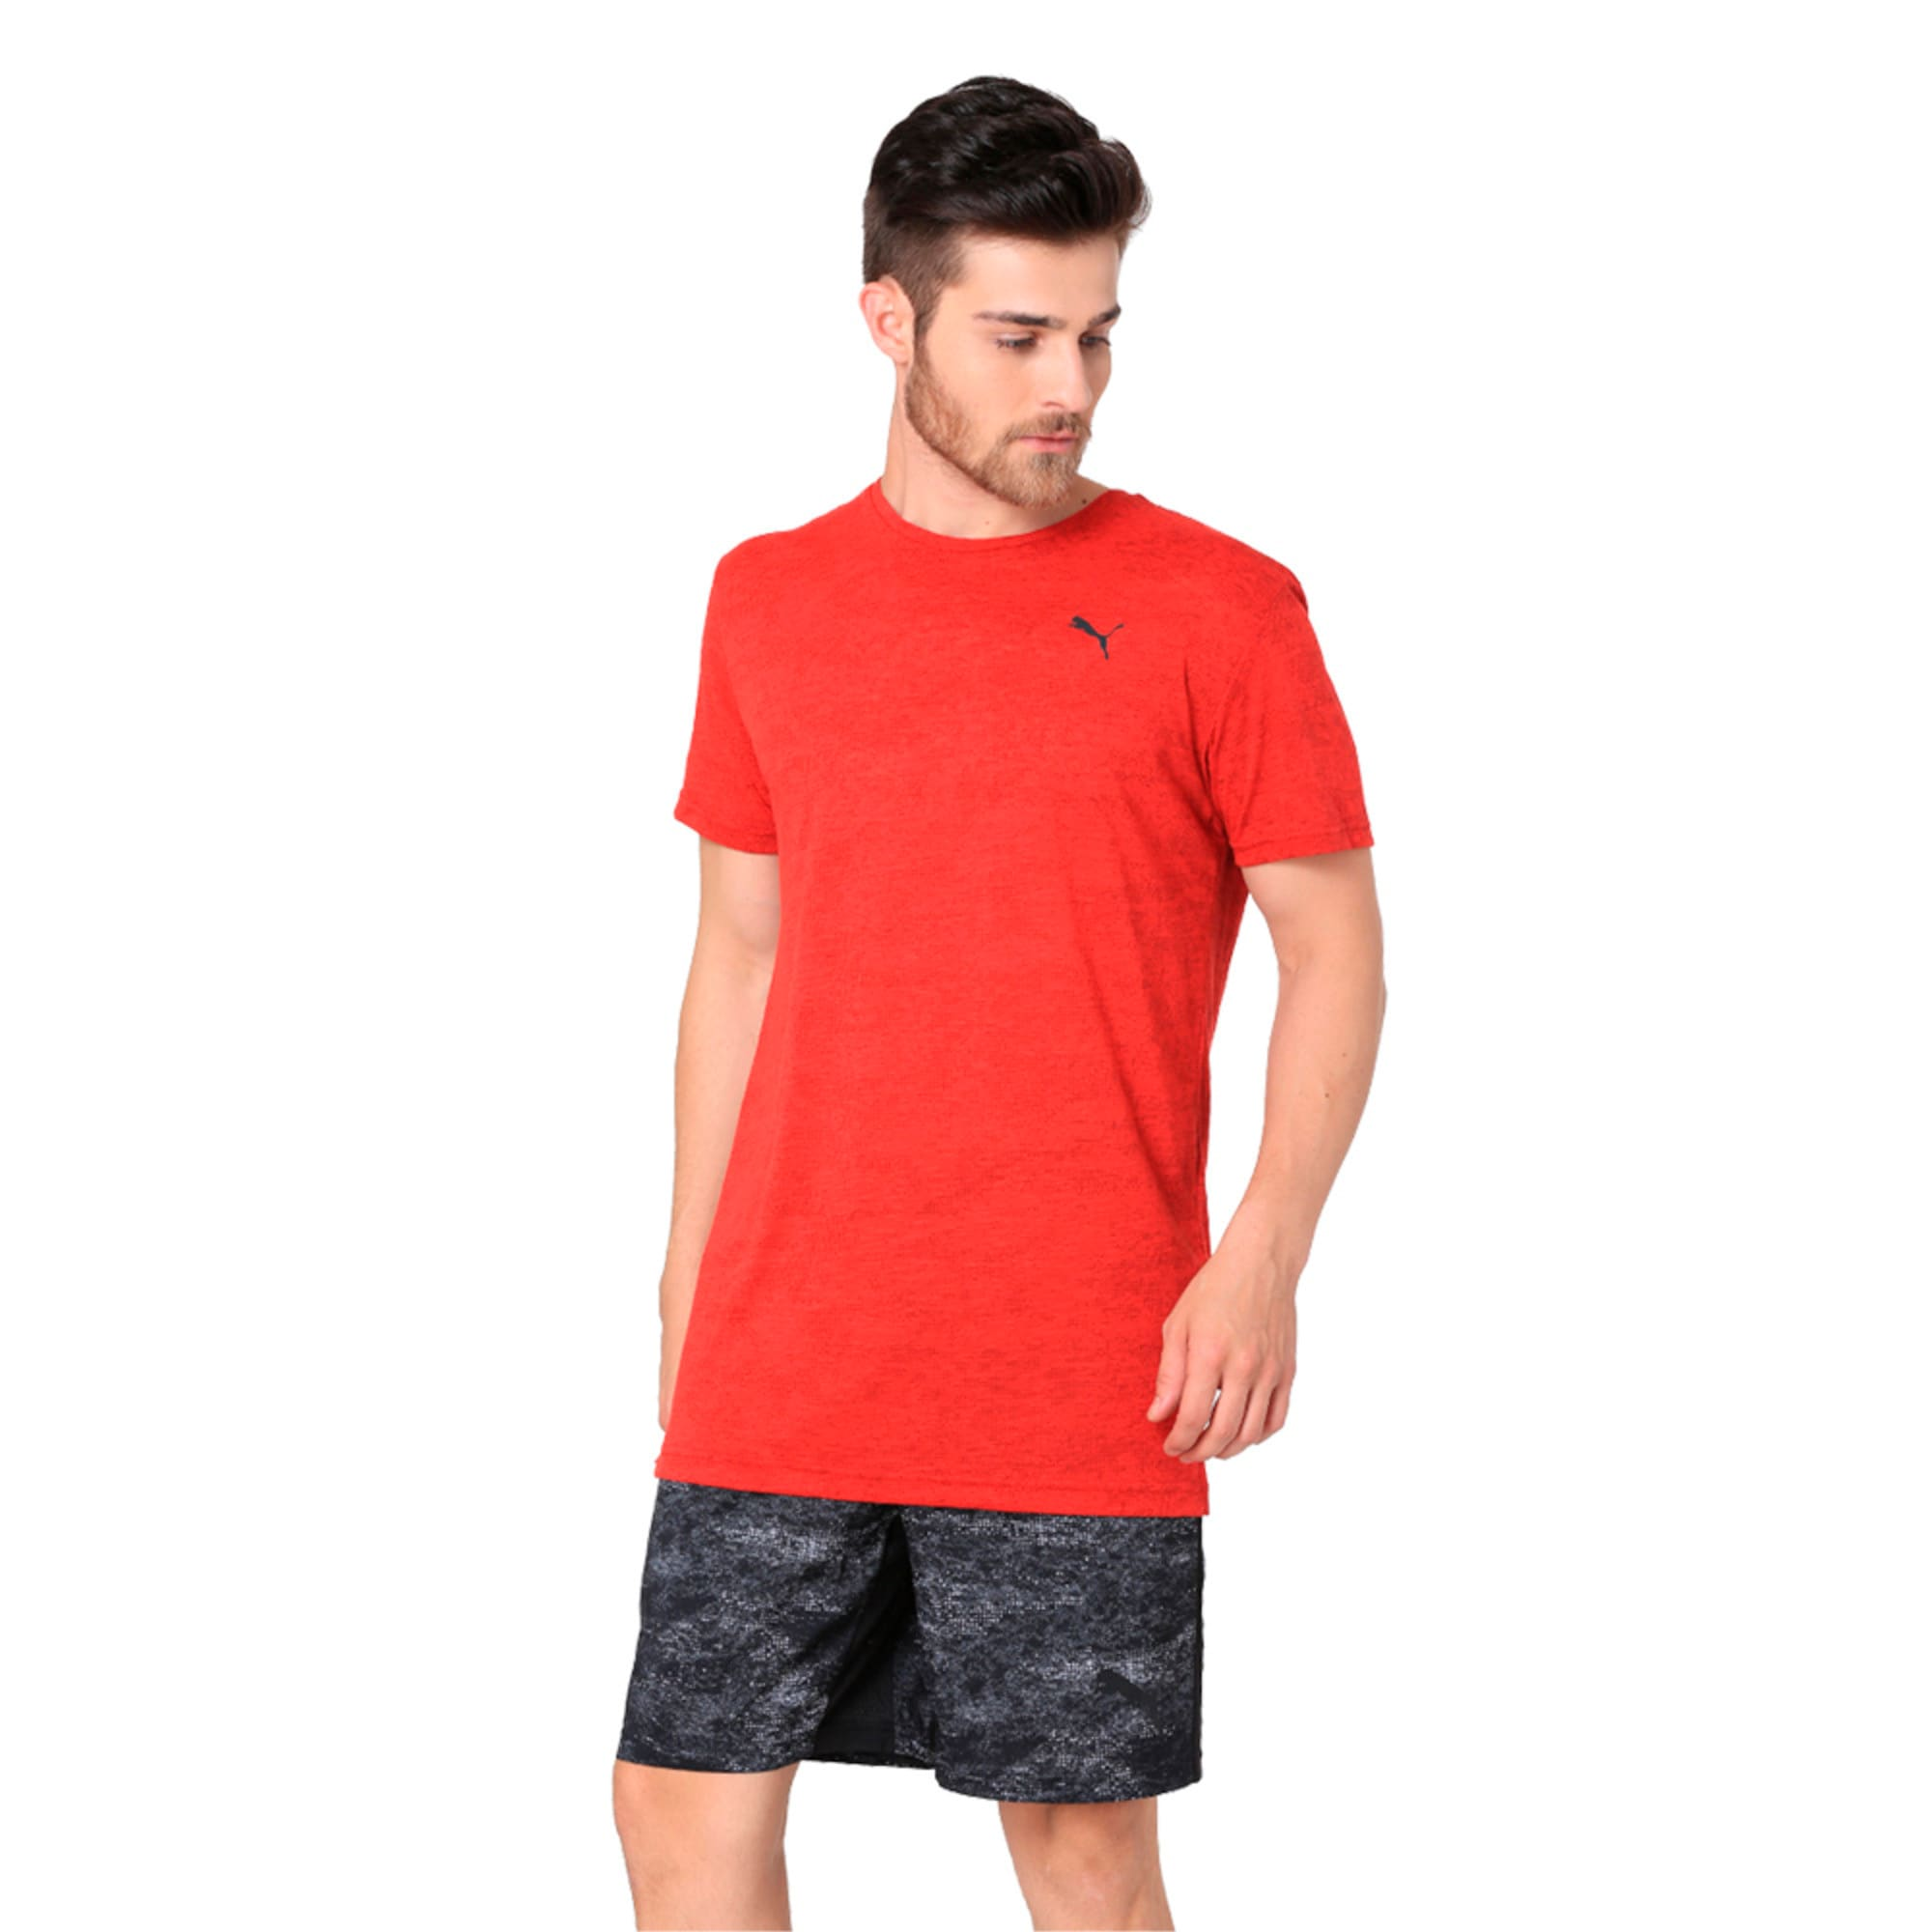 Thumbnail 4 of drirelease Graphic Men's Short Sleeve Training Tee, Flame Scarlet, medium-IND